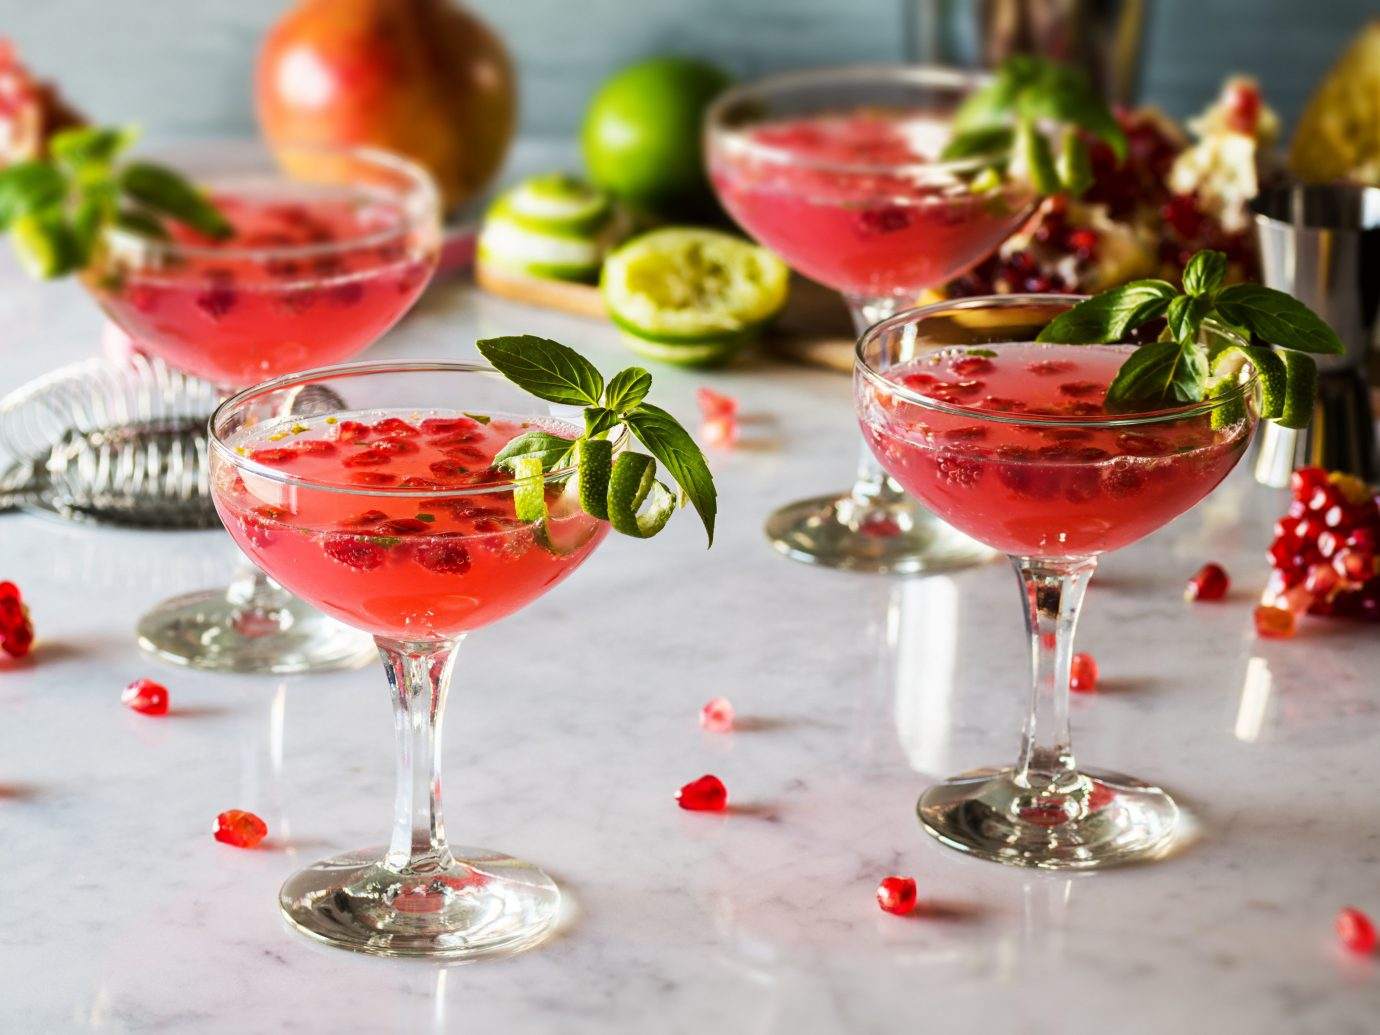 Style + Design alcoholic beverage cocktail Drink food produce wine meal glass fruit several colored